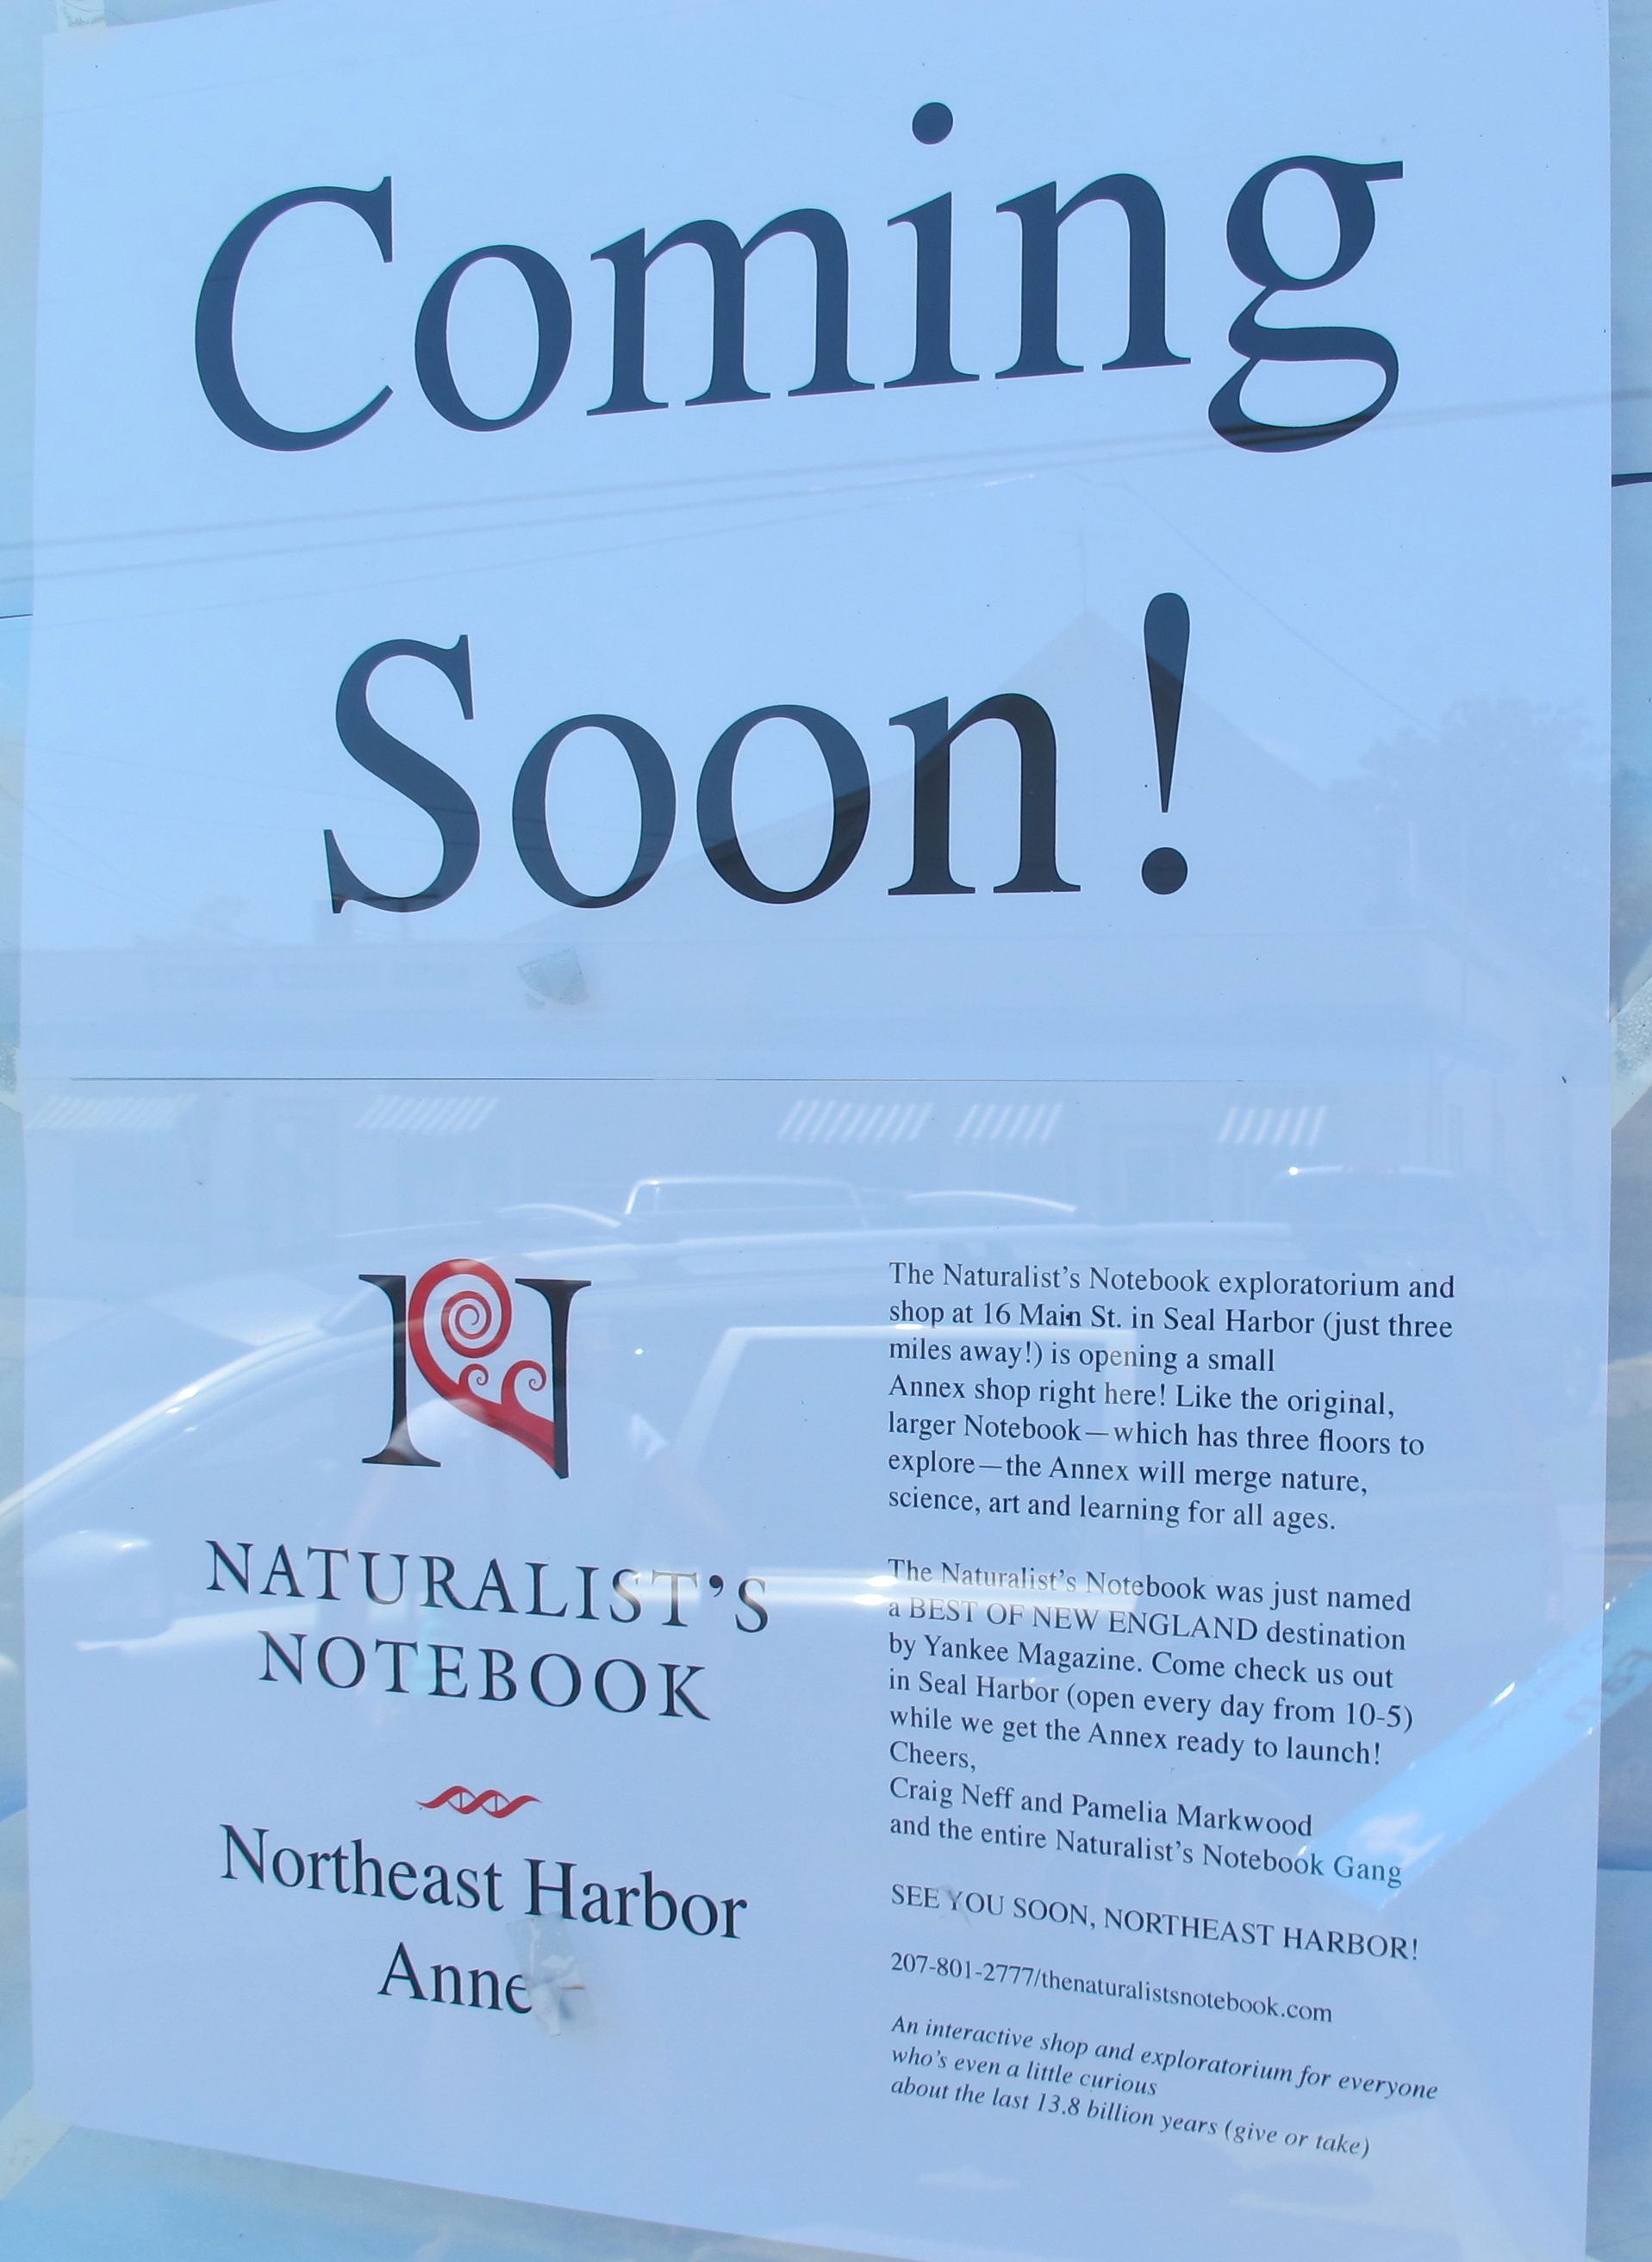 This week we put this in the front window of the Northeast Harbor Annex, ending a few months of mystery among townspeople as to what would be moving into the small building at 115 Main Street.